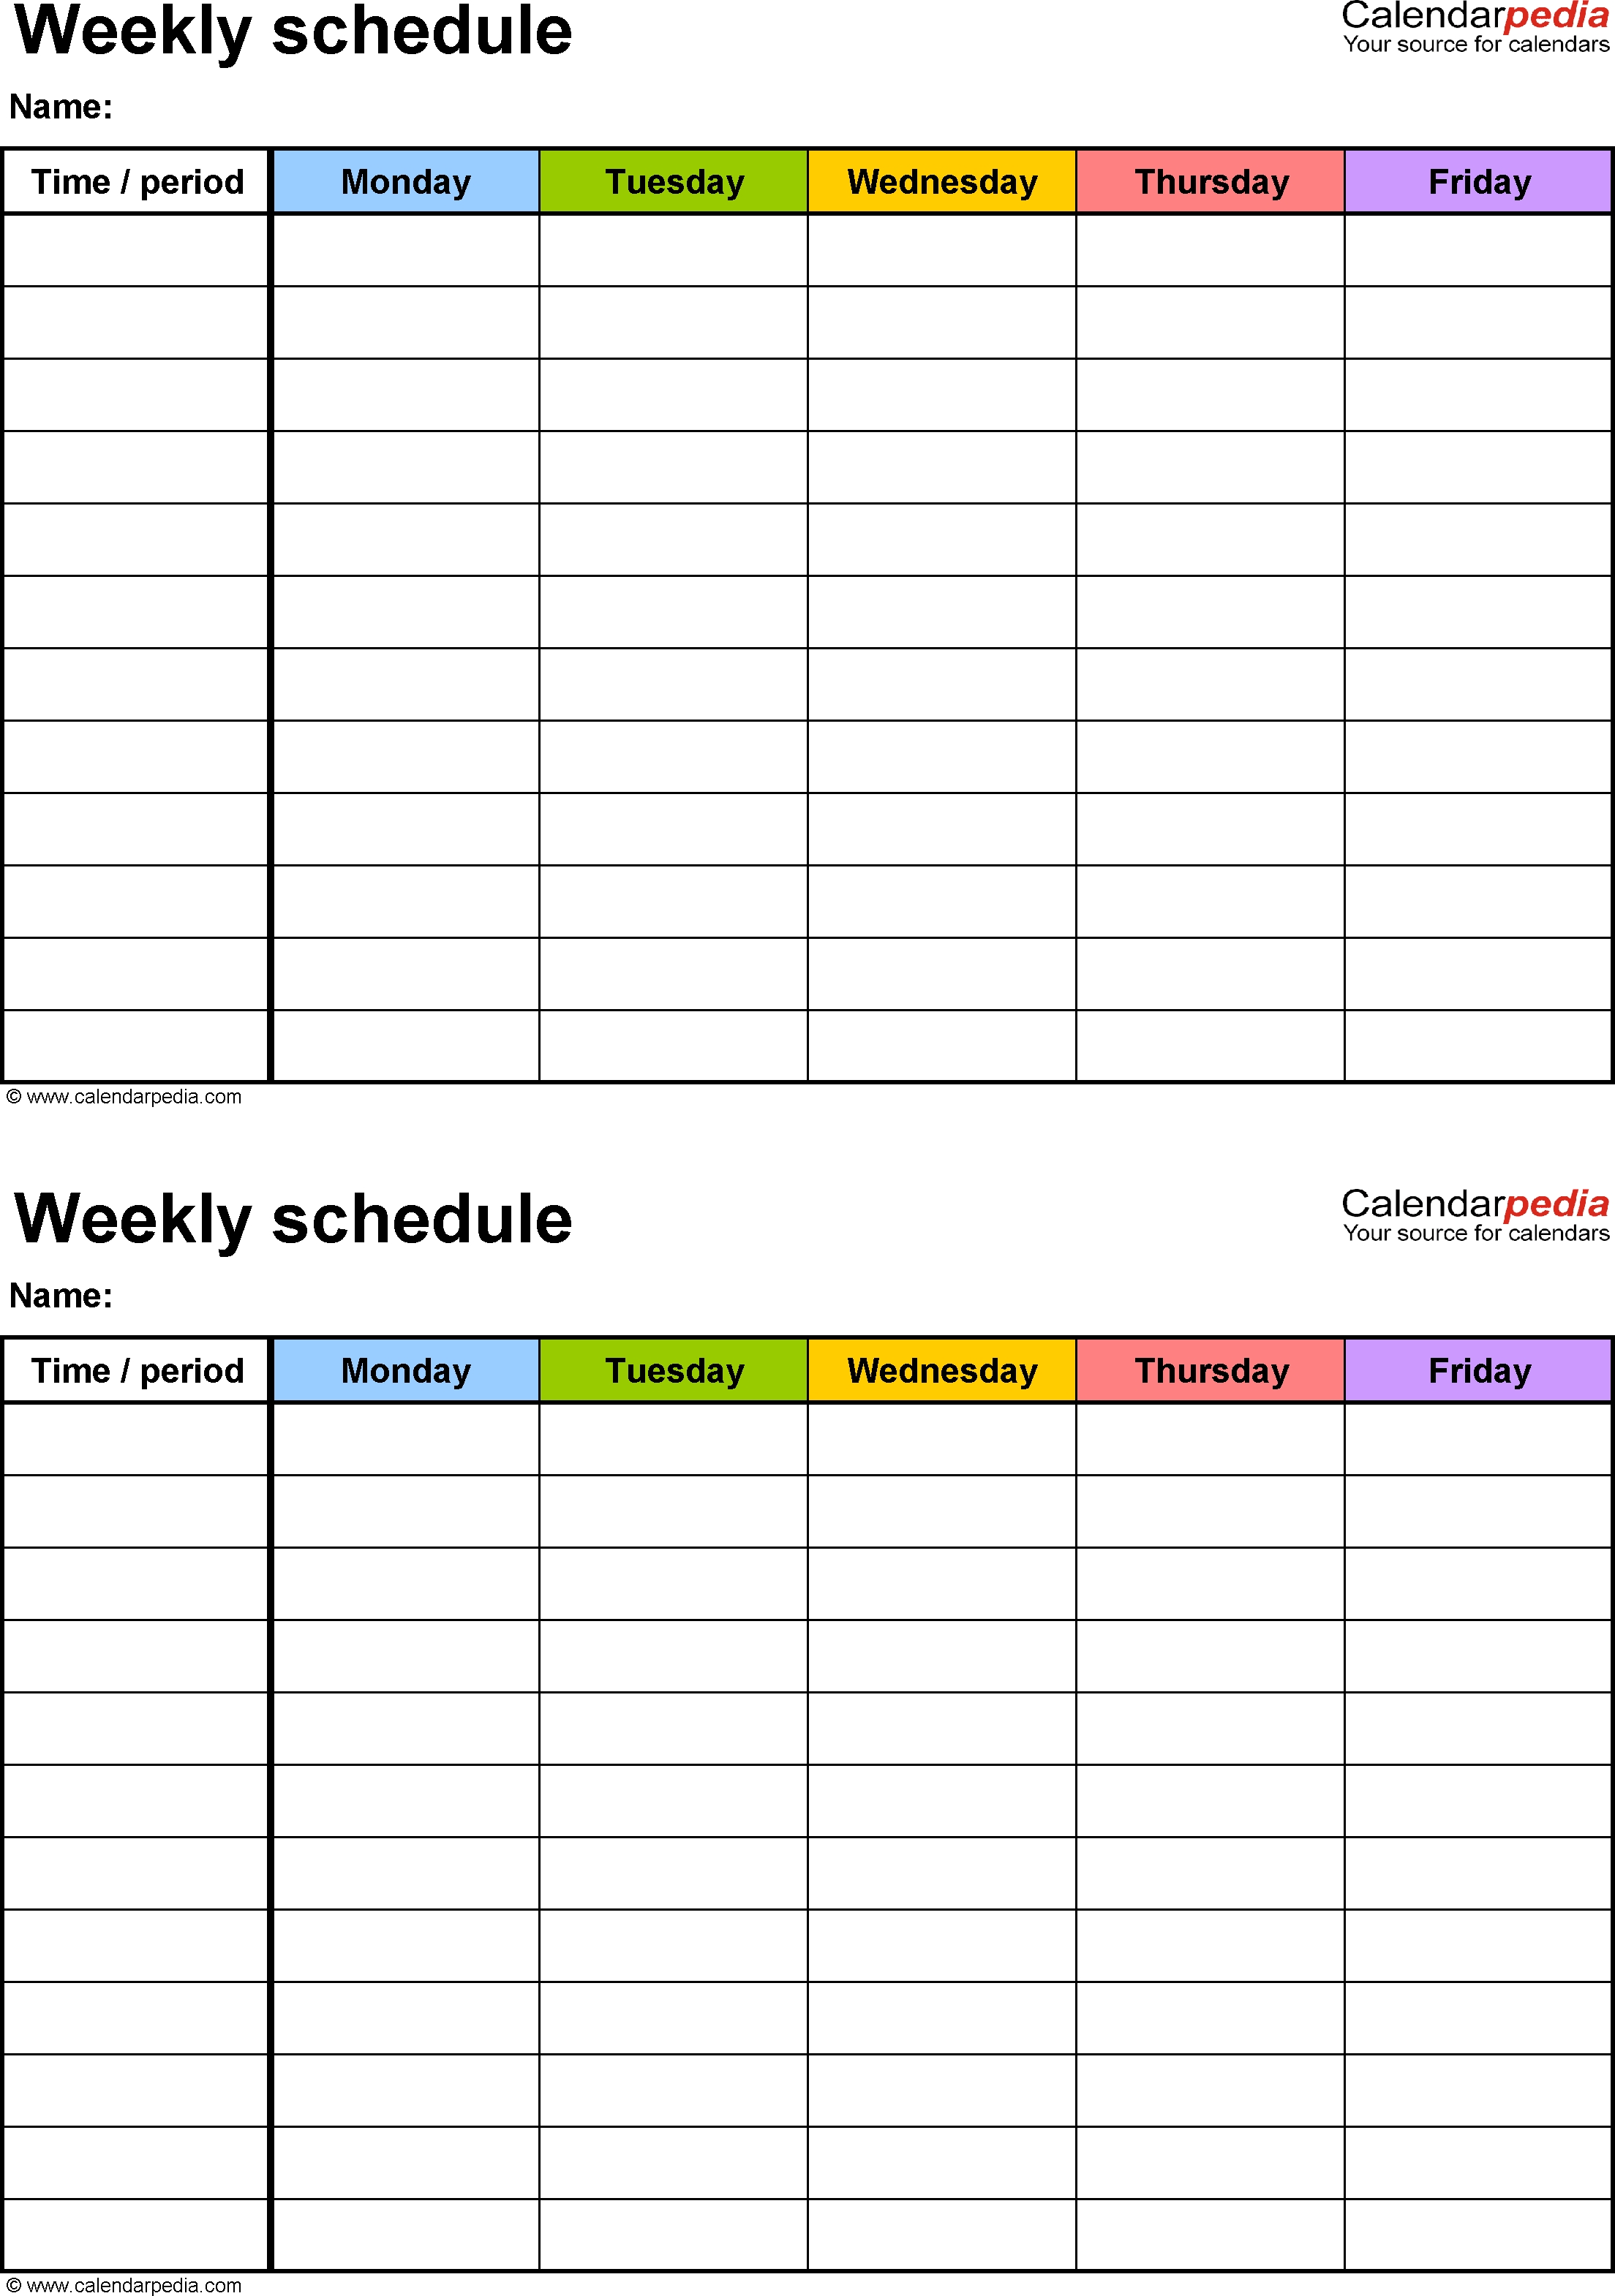 Free Weekly Schedule Templates For Word - 18 Templates-One Week Monday Through Friday Calendar Template